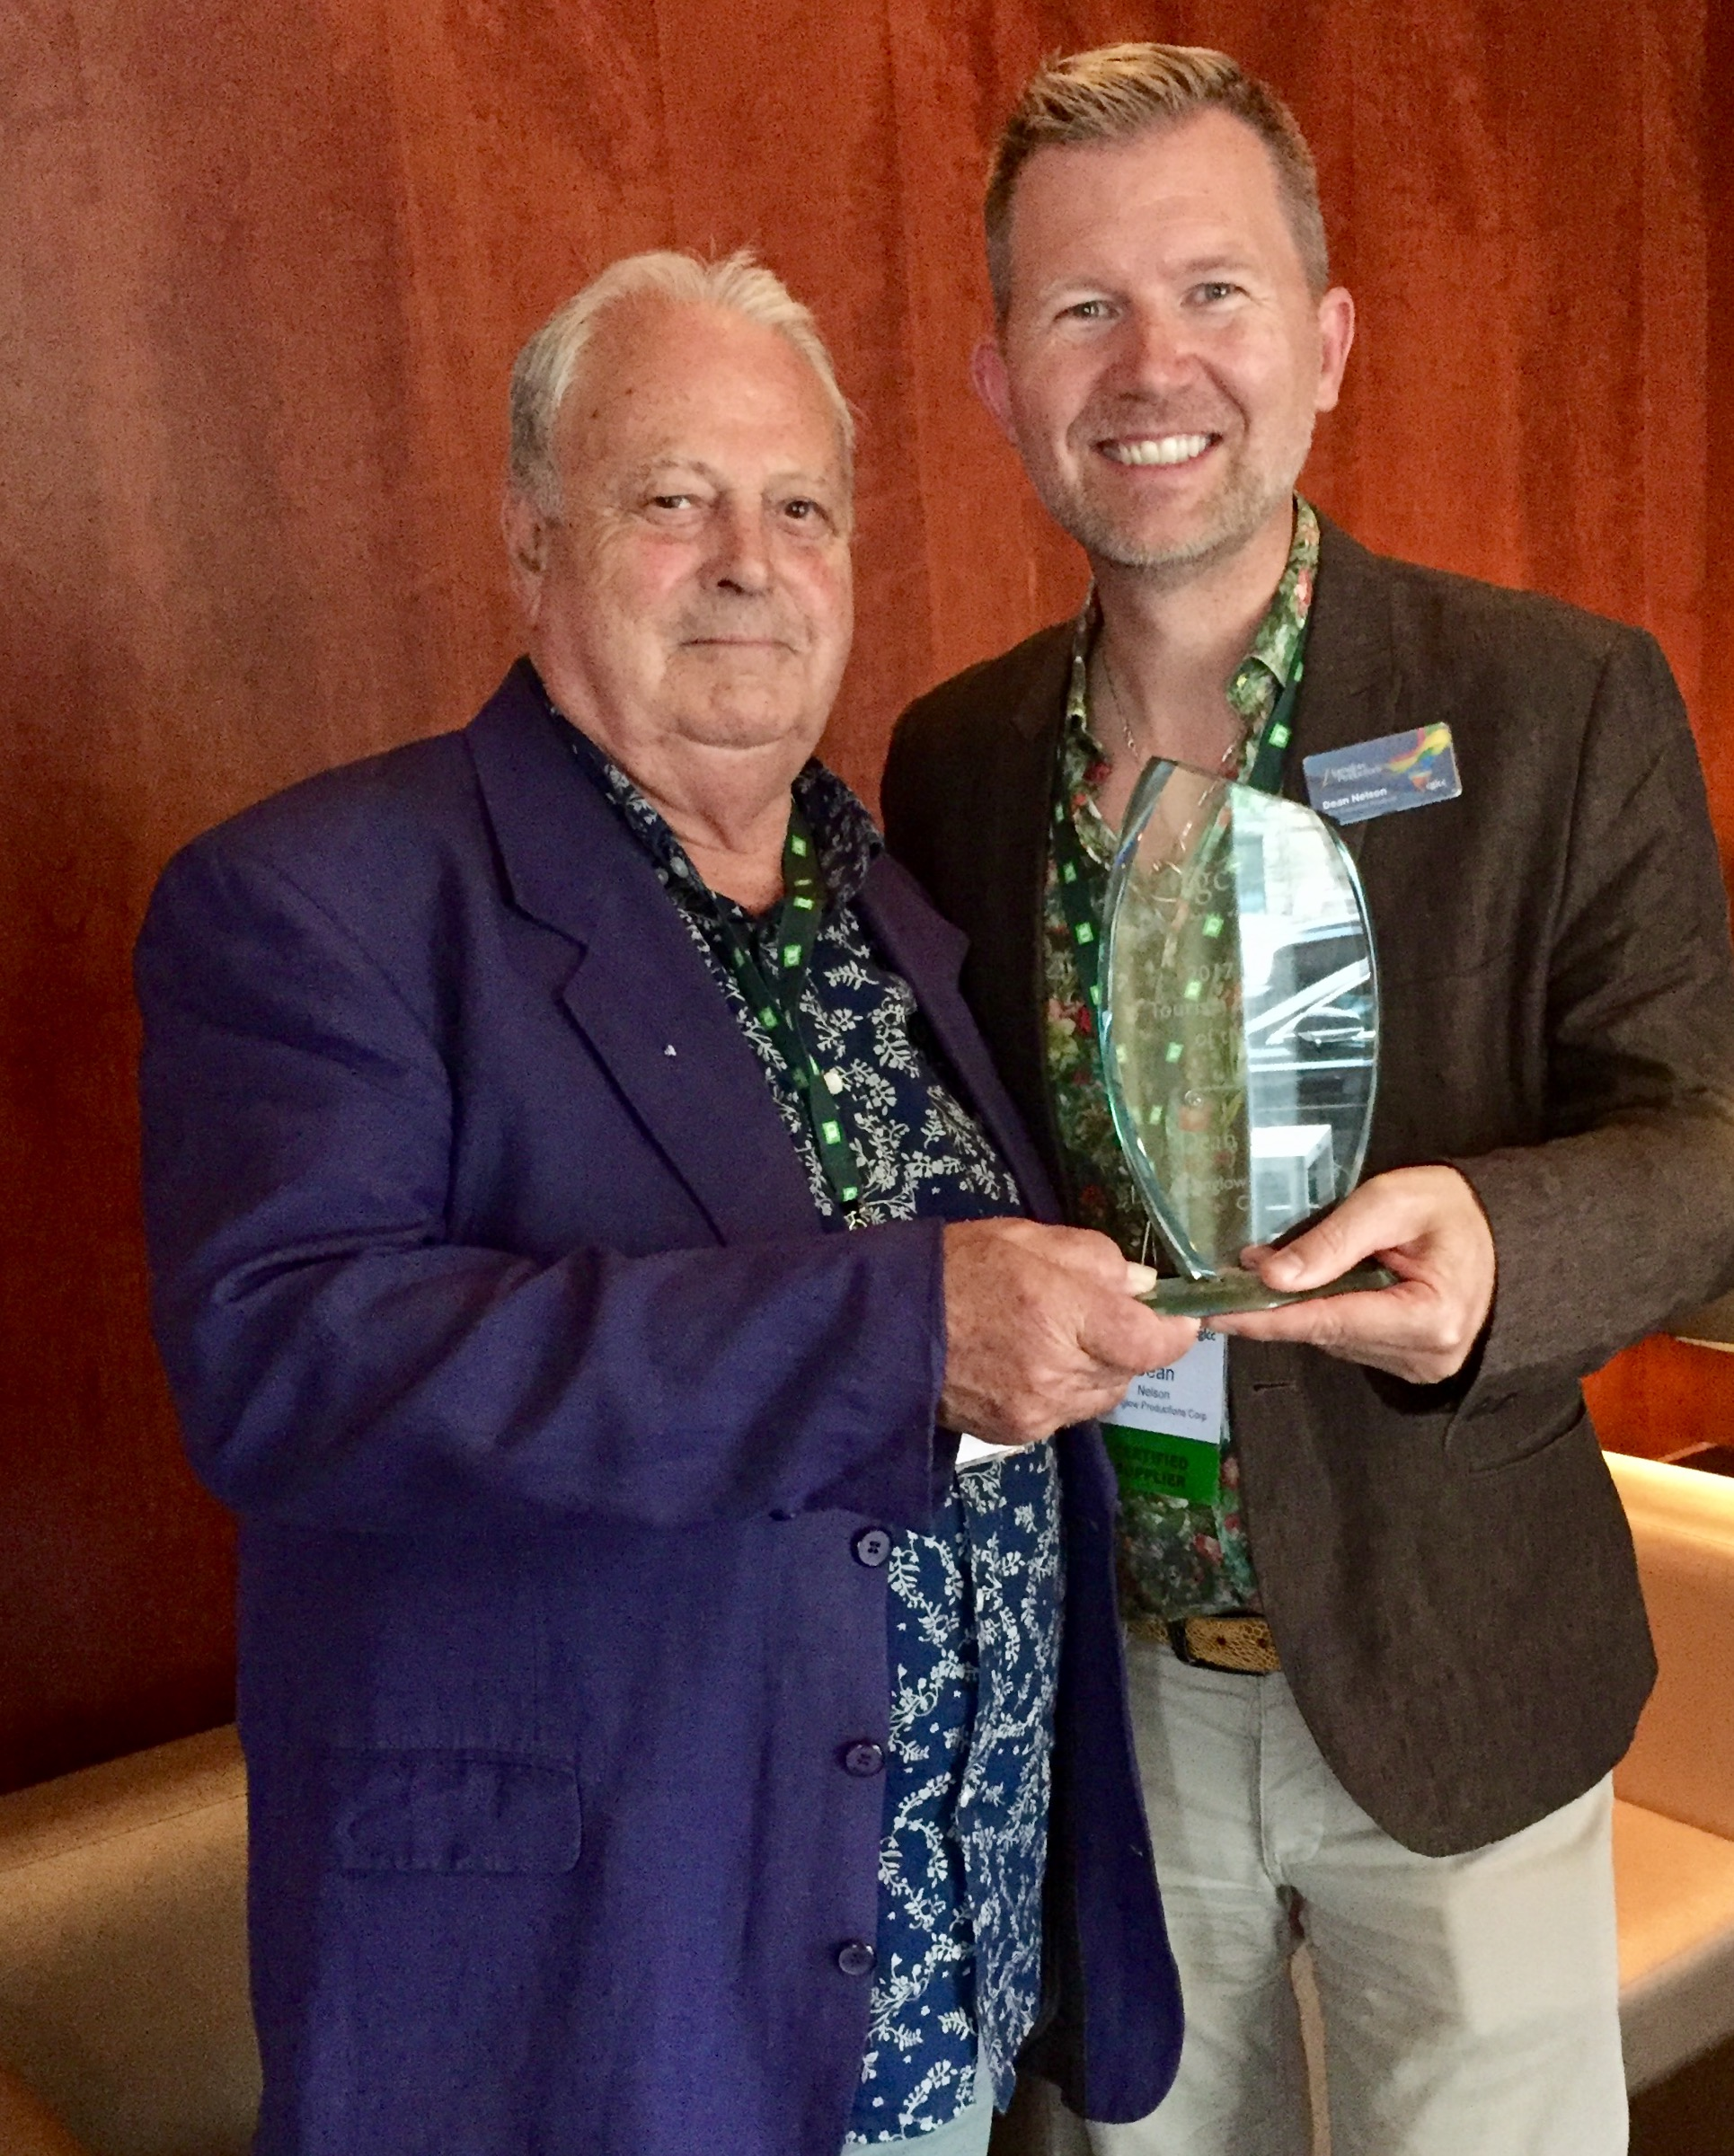 Dean Nelson LGBT Tourism Leader of the Year